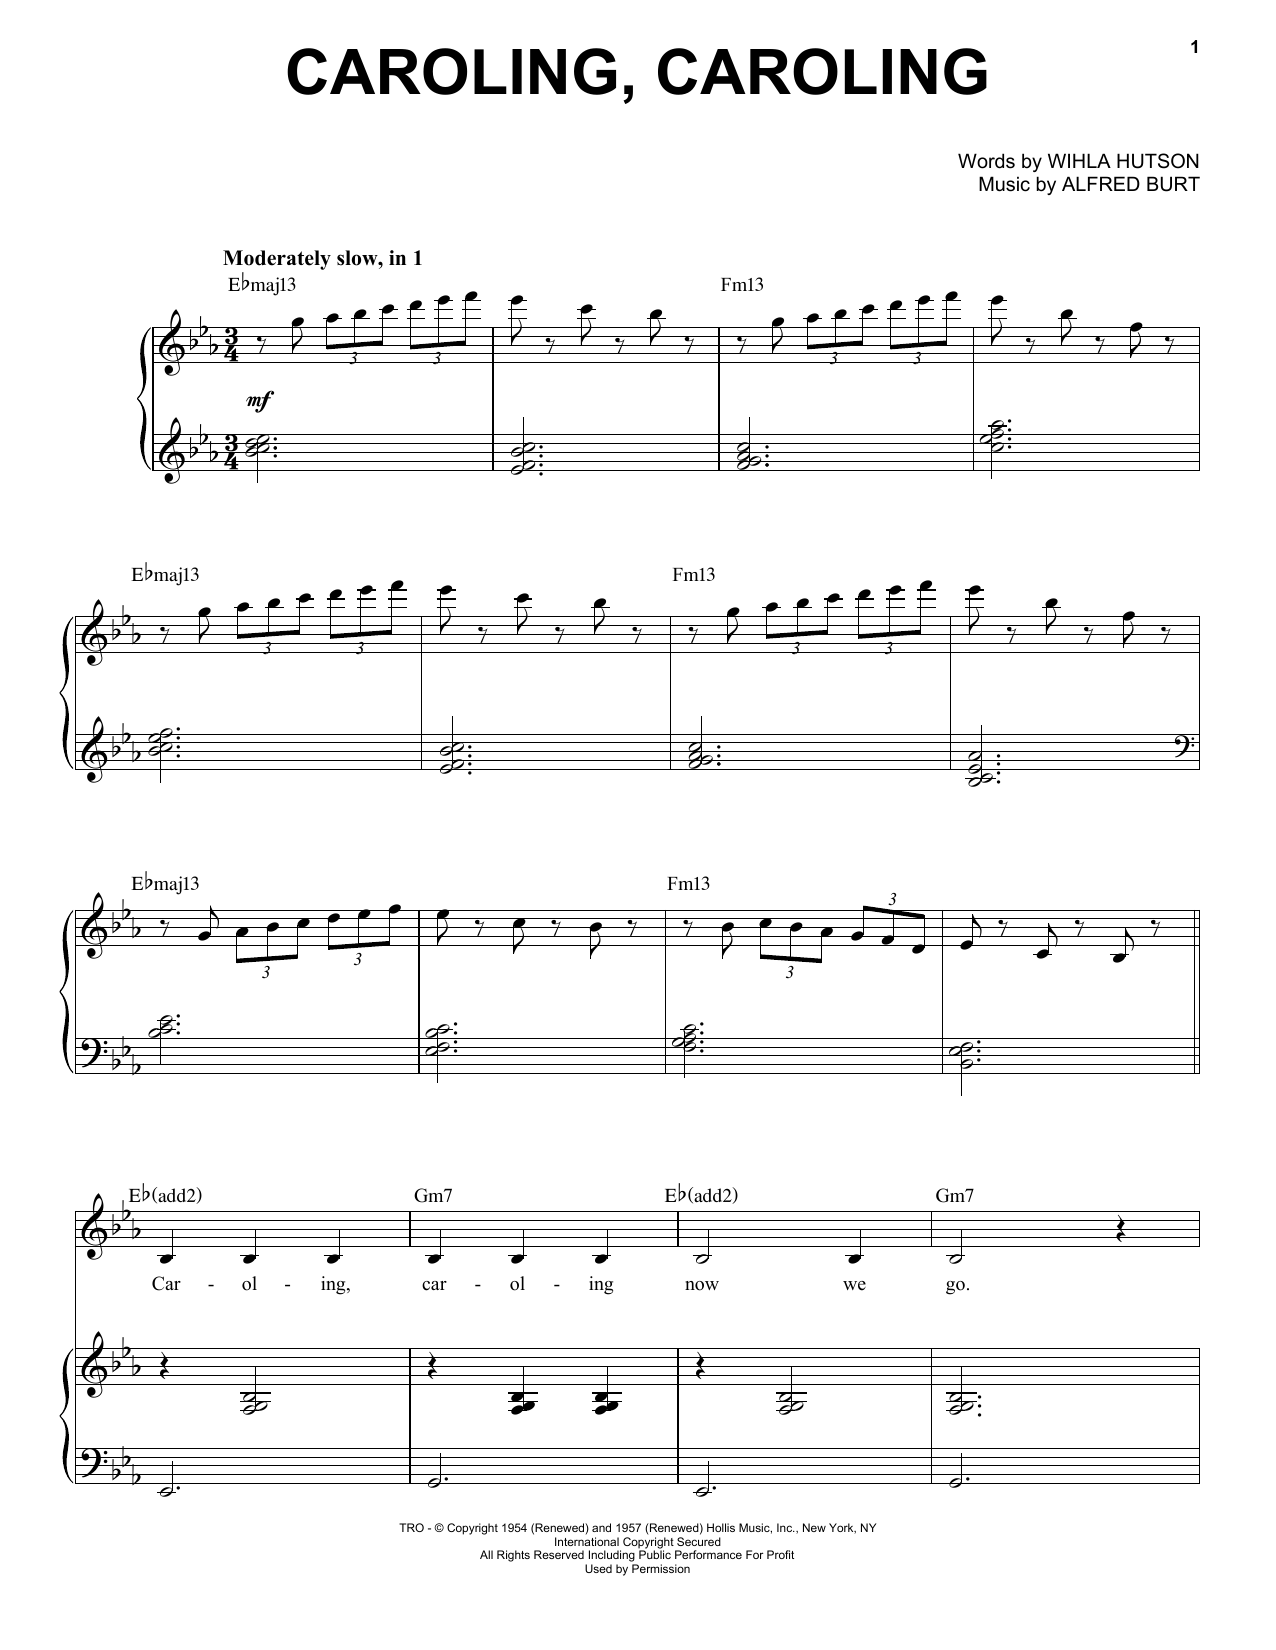 Caroling, Caroling sheet music for voice and piano by Alfred Burt